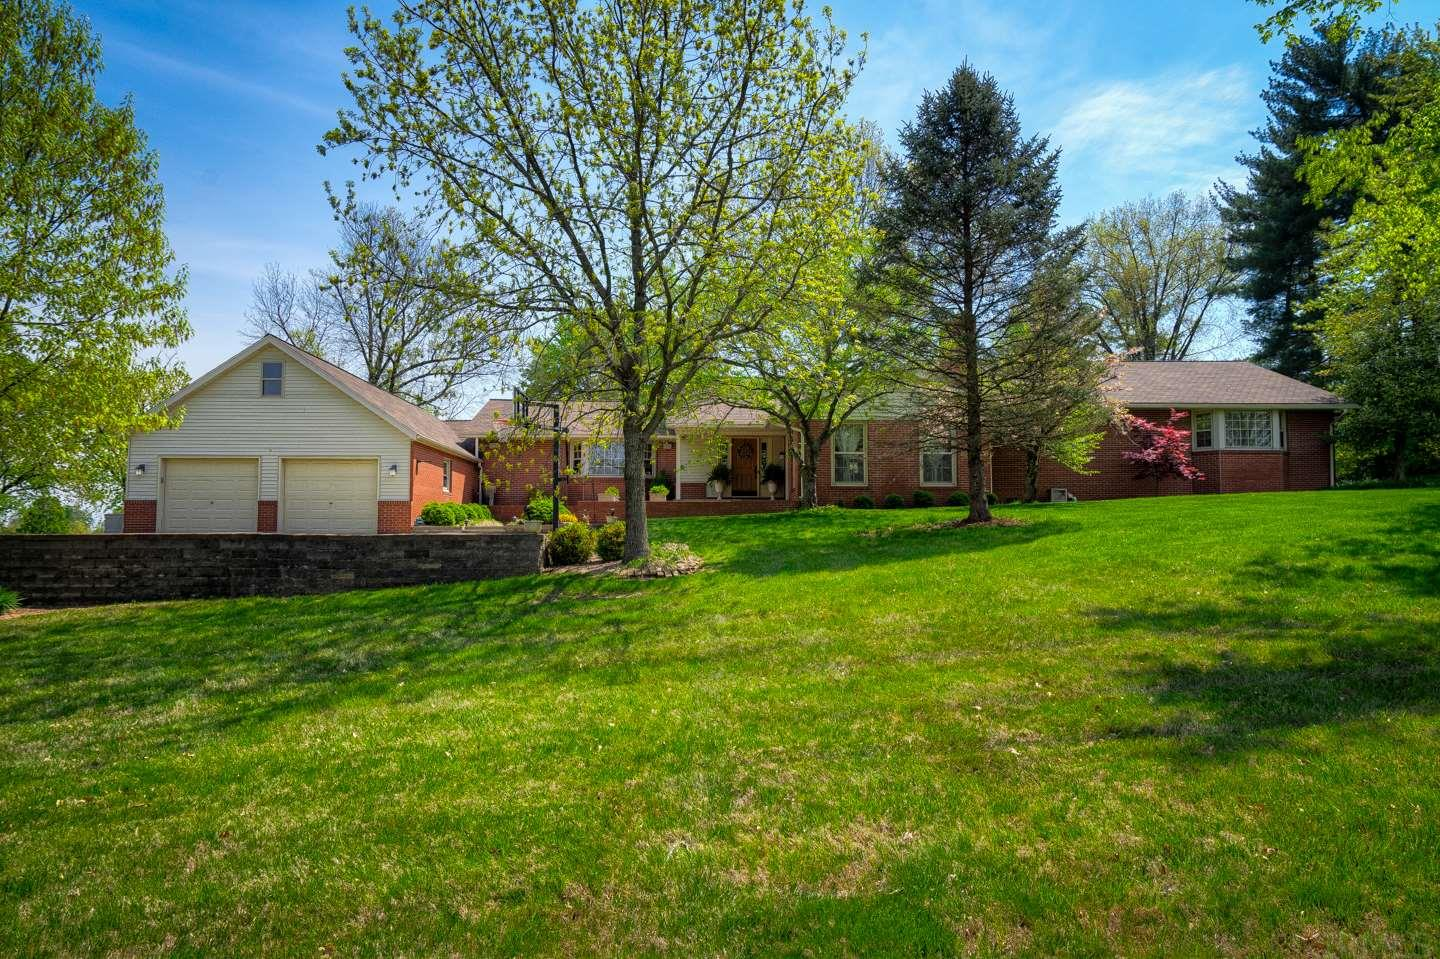 Welcome to this amazing modern ranch home! You will immediately be captivated by the oversized sunken family room and kitchen fit for a cook!  This 4 bedroom, 3.5 bath, one story home features 3,907 sq ft of living space.   There are 4 family/living areas plus an outdoor patio.  The spacious eat-in kitchen features an abundant amount of cabinets, granite counter-tops, center island with cabinets and double door pantry closets.  The screened in porch is a cozy retreat with slate floors, small built in refrigerator and a concrete countertop.   As you can see from the aerial photo, this home is just a hop, skip and a jump from the city park, city pool and League Stadium...home of Bombers Baseball!  Enjoy the many updates and wonderful location this home has to offer!